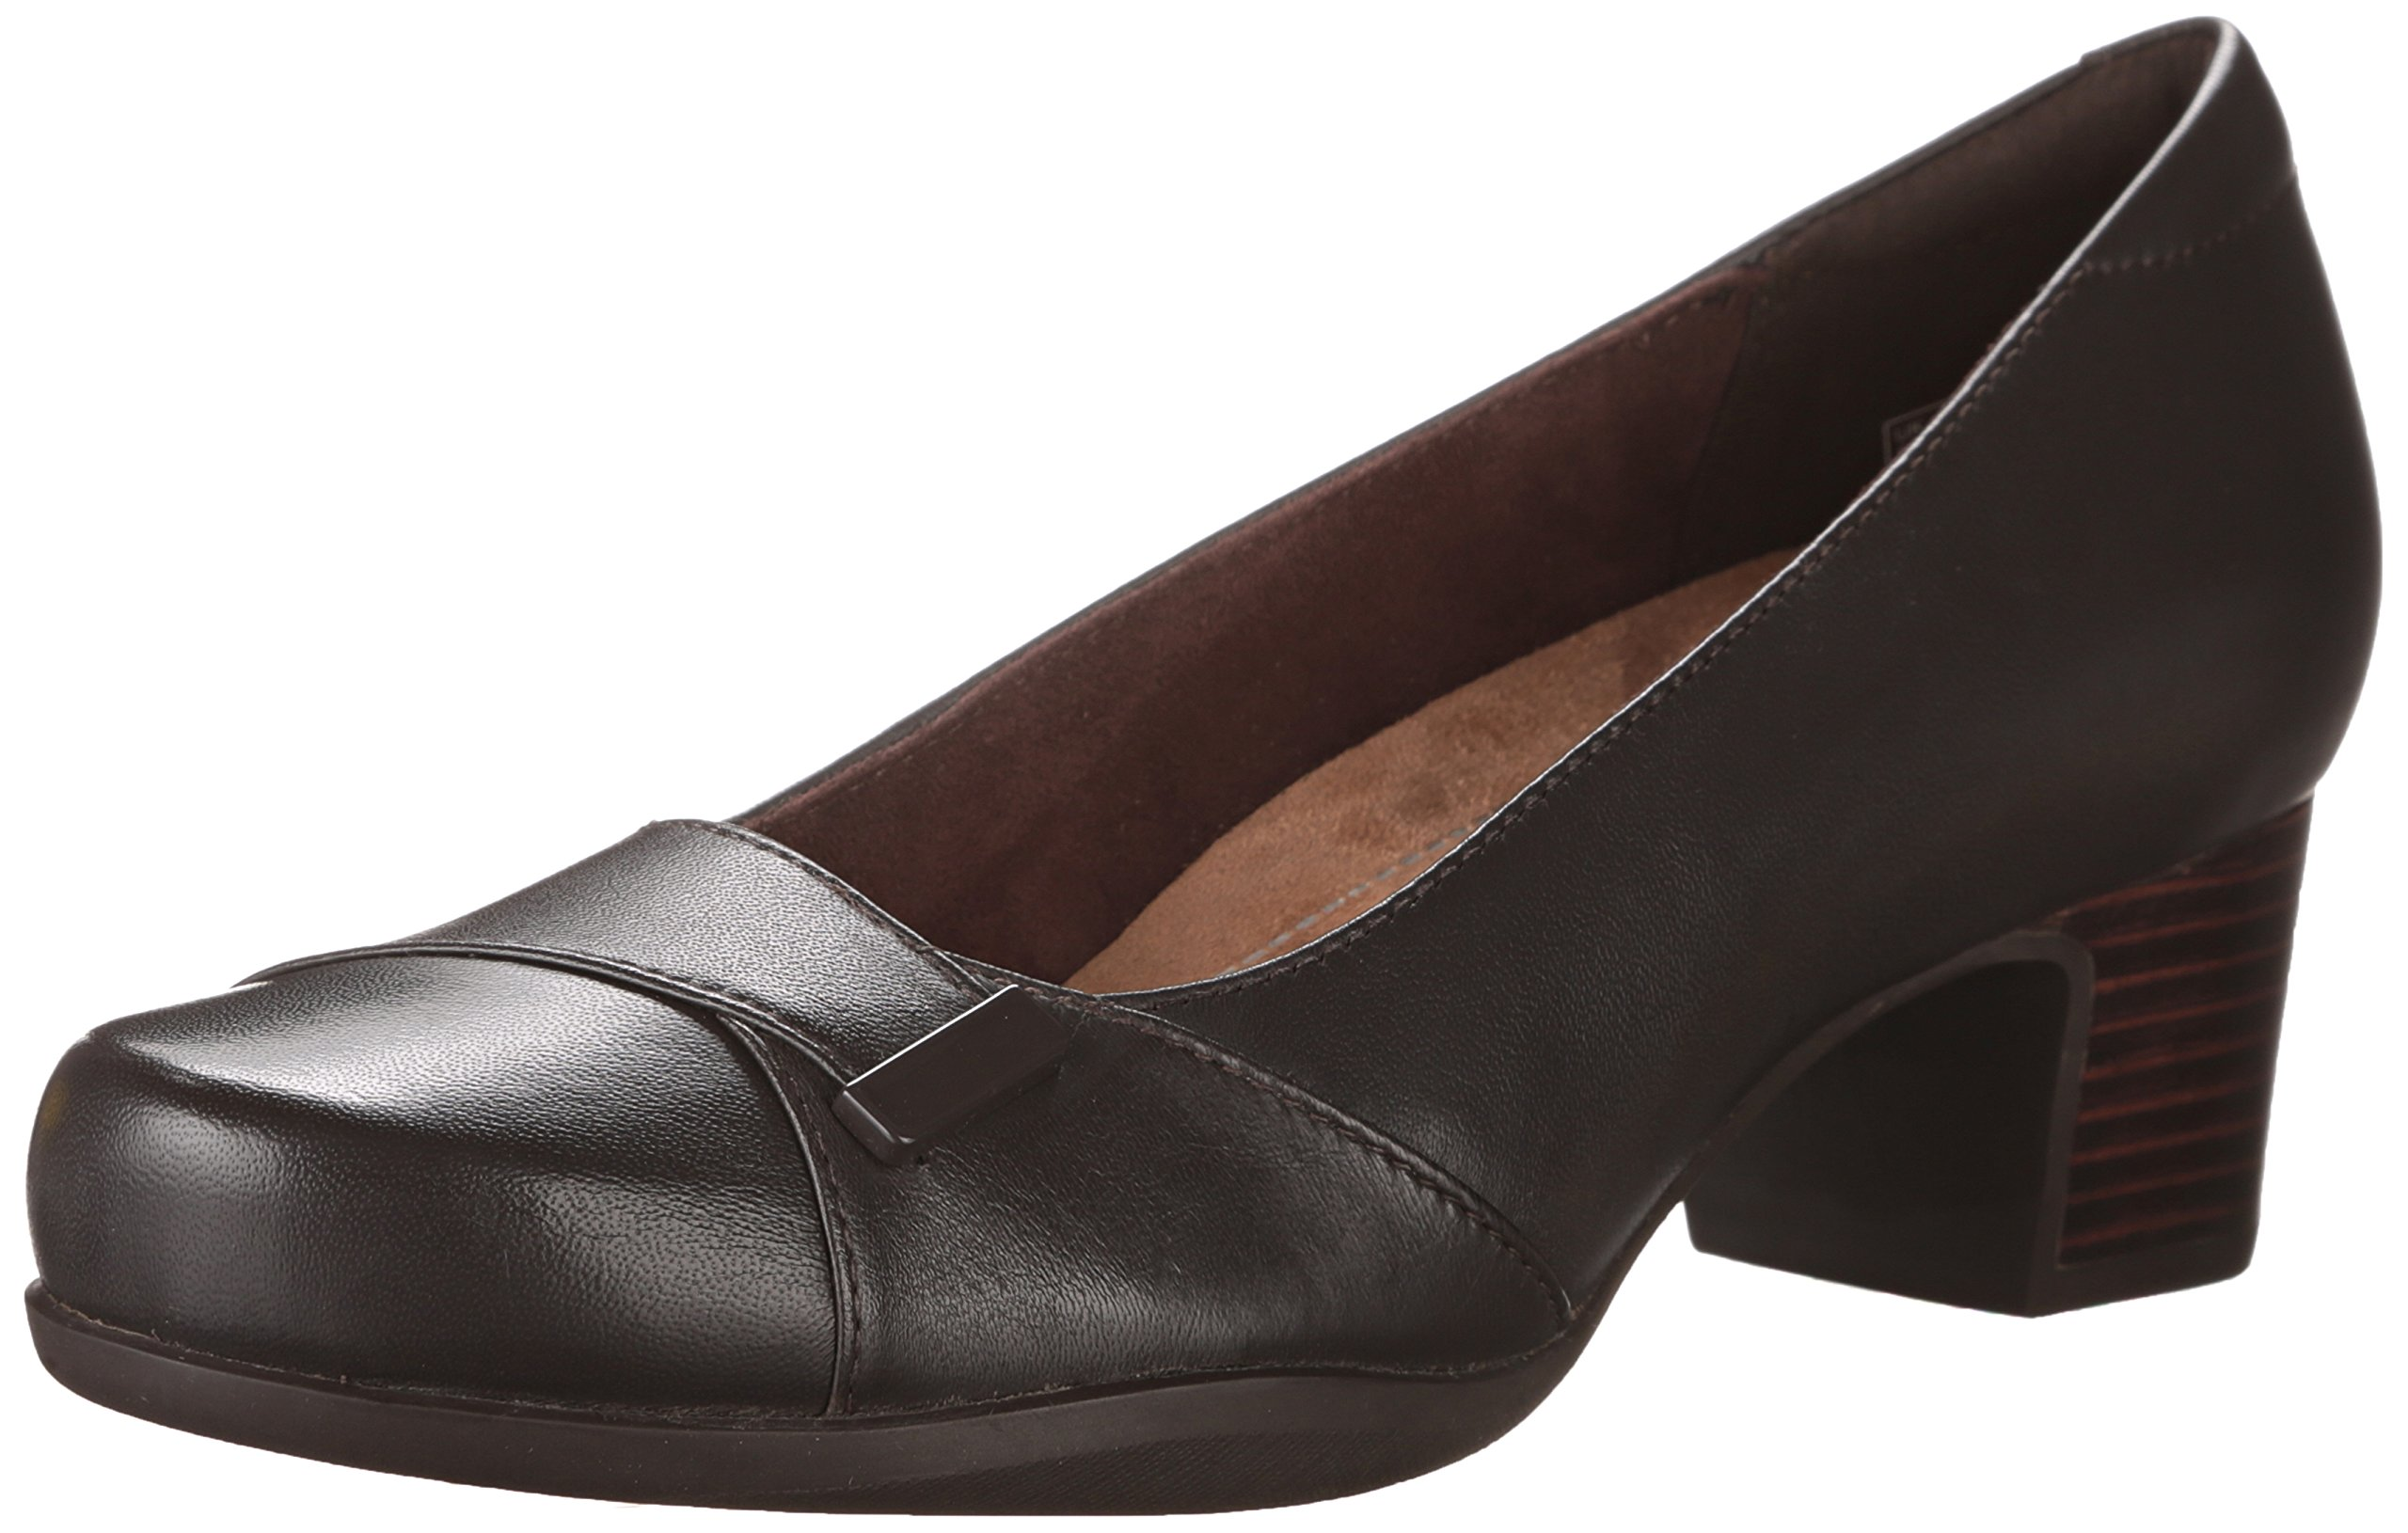 CLARKS Women's Rosalyn Belle Dress Pump, Dark Brown Leather, 10 M US